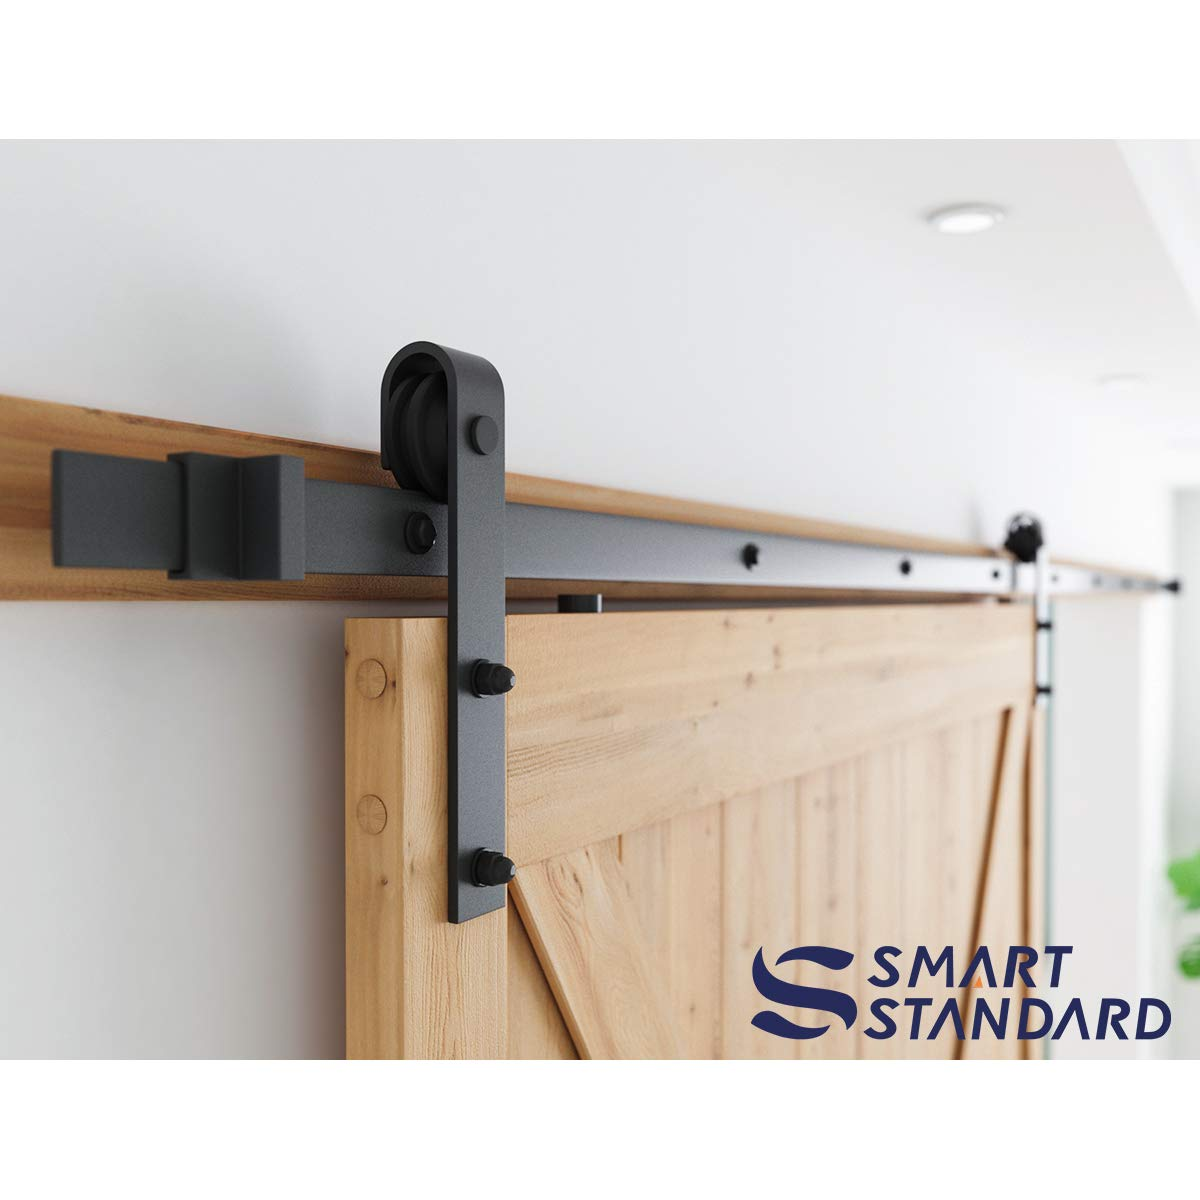 SMARTSTANDARD Sliding Barn Door Hardware Hangers 2pcs Black J Shape Hangers